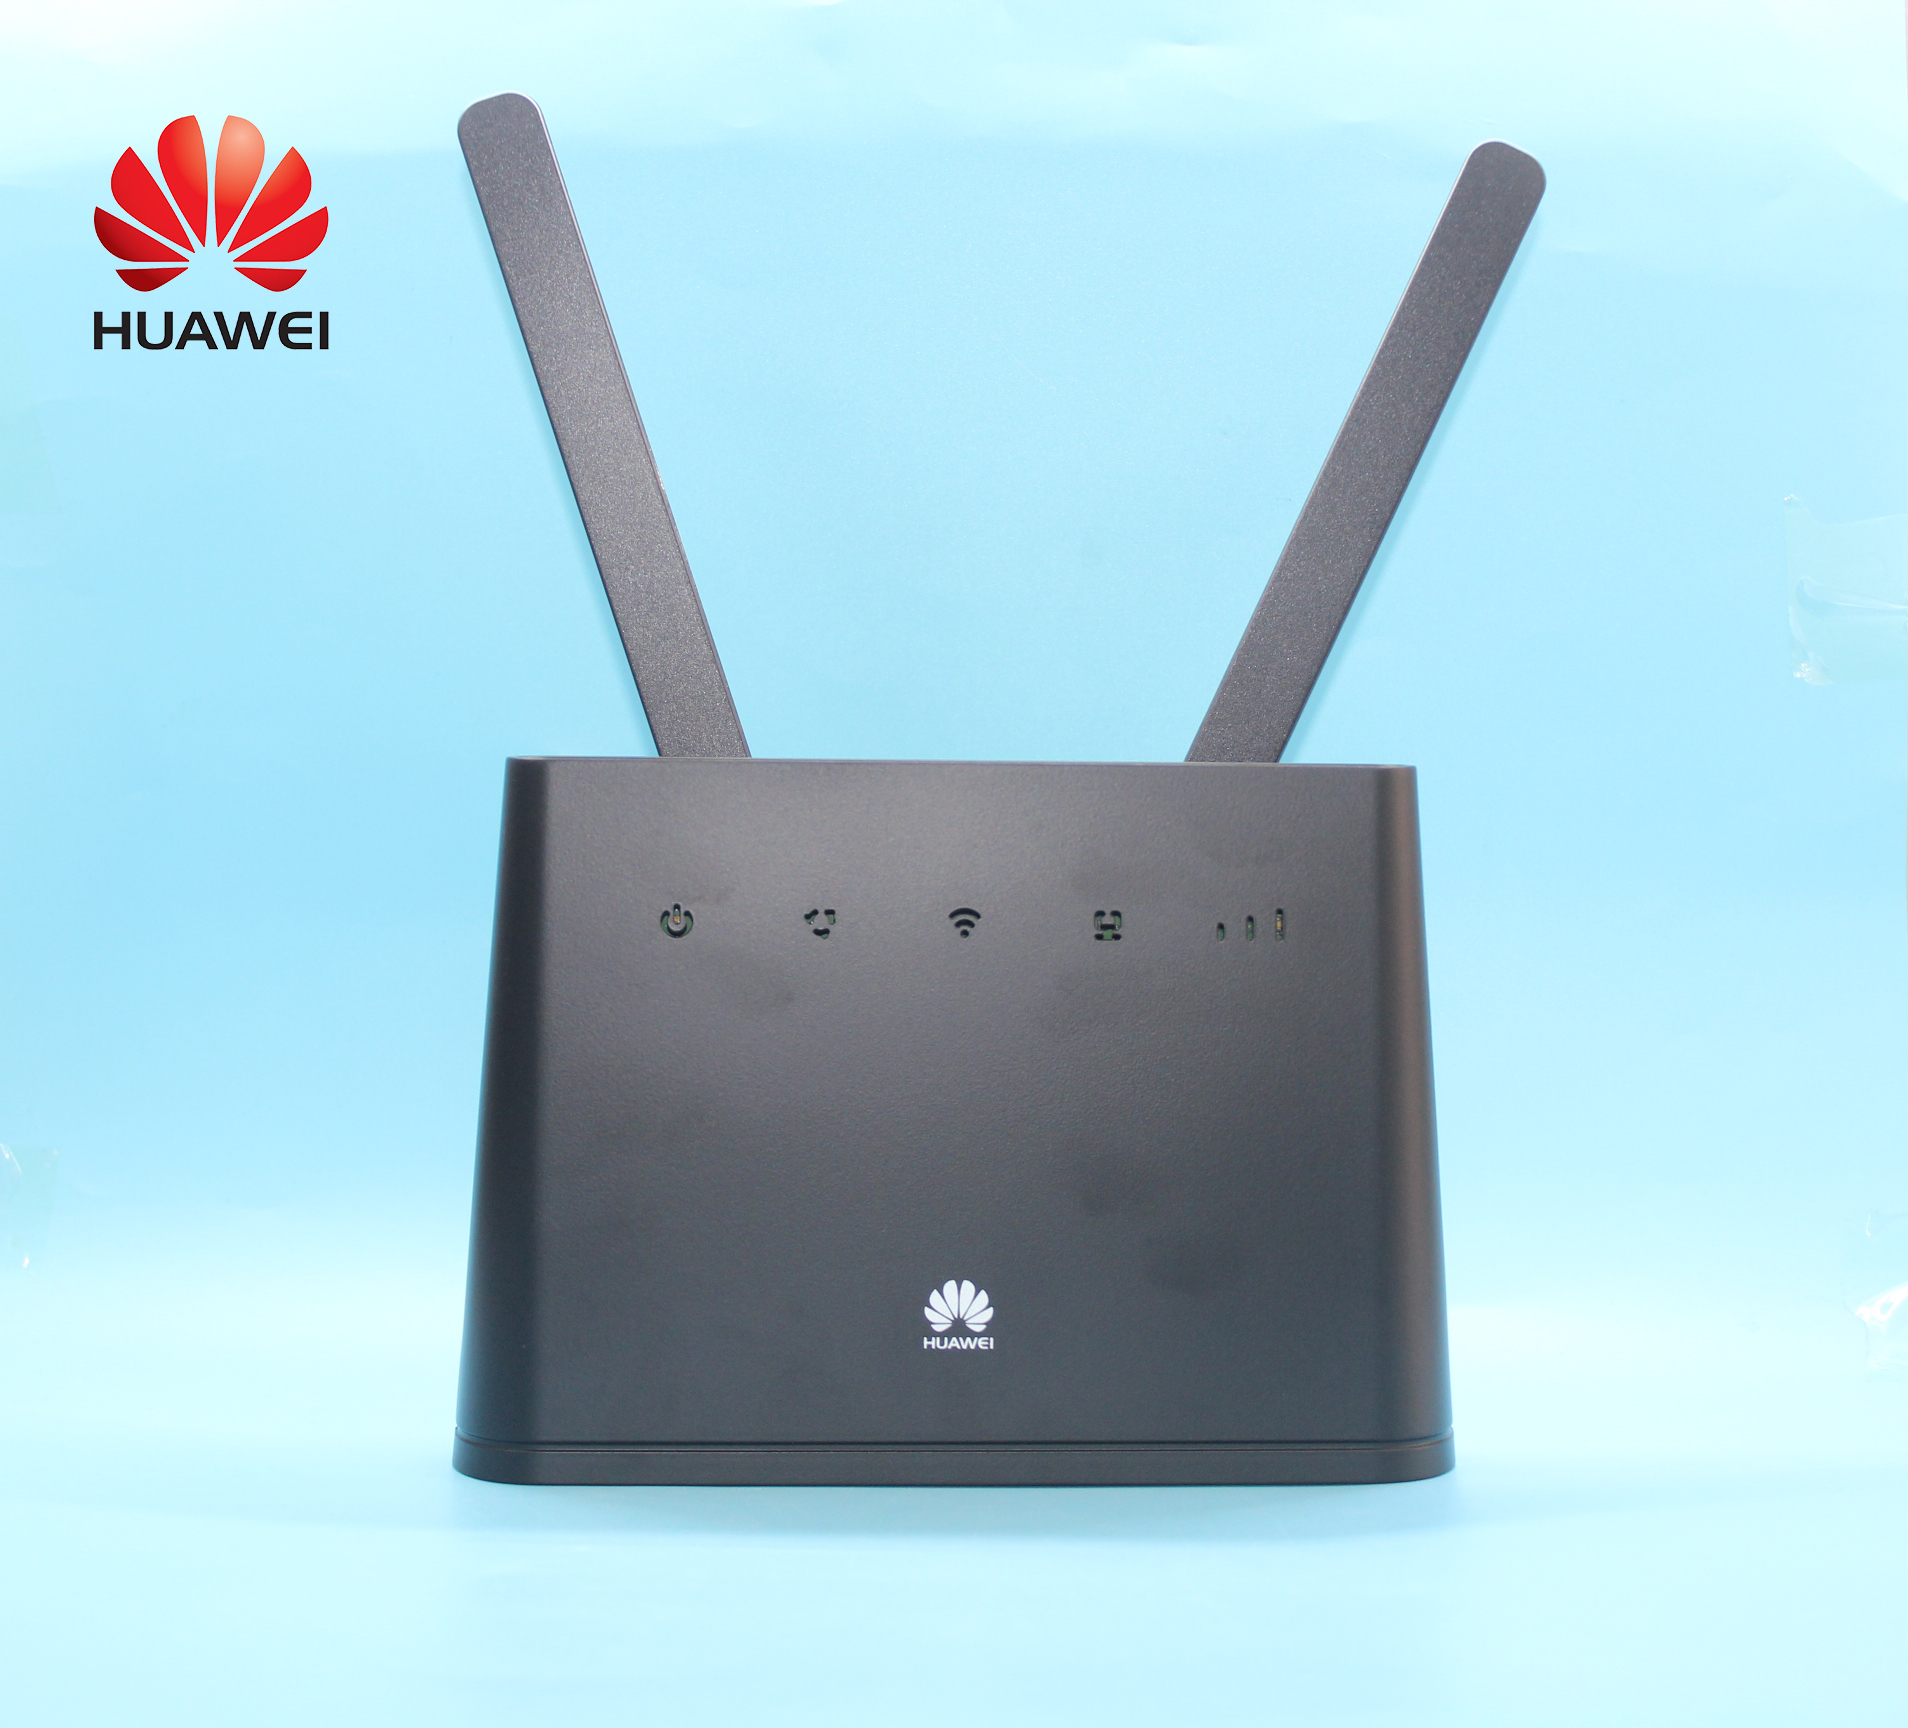 Unlocked Huawei B310 B310s-927 with Antenna 150Mbps 4G LTE Wireless Router Wifi Router with Sim Card Slot Up to 32 Devices